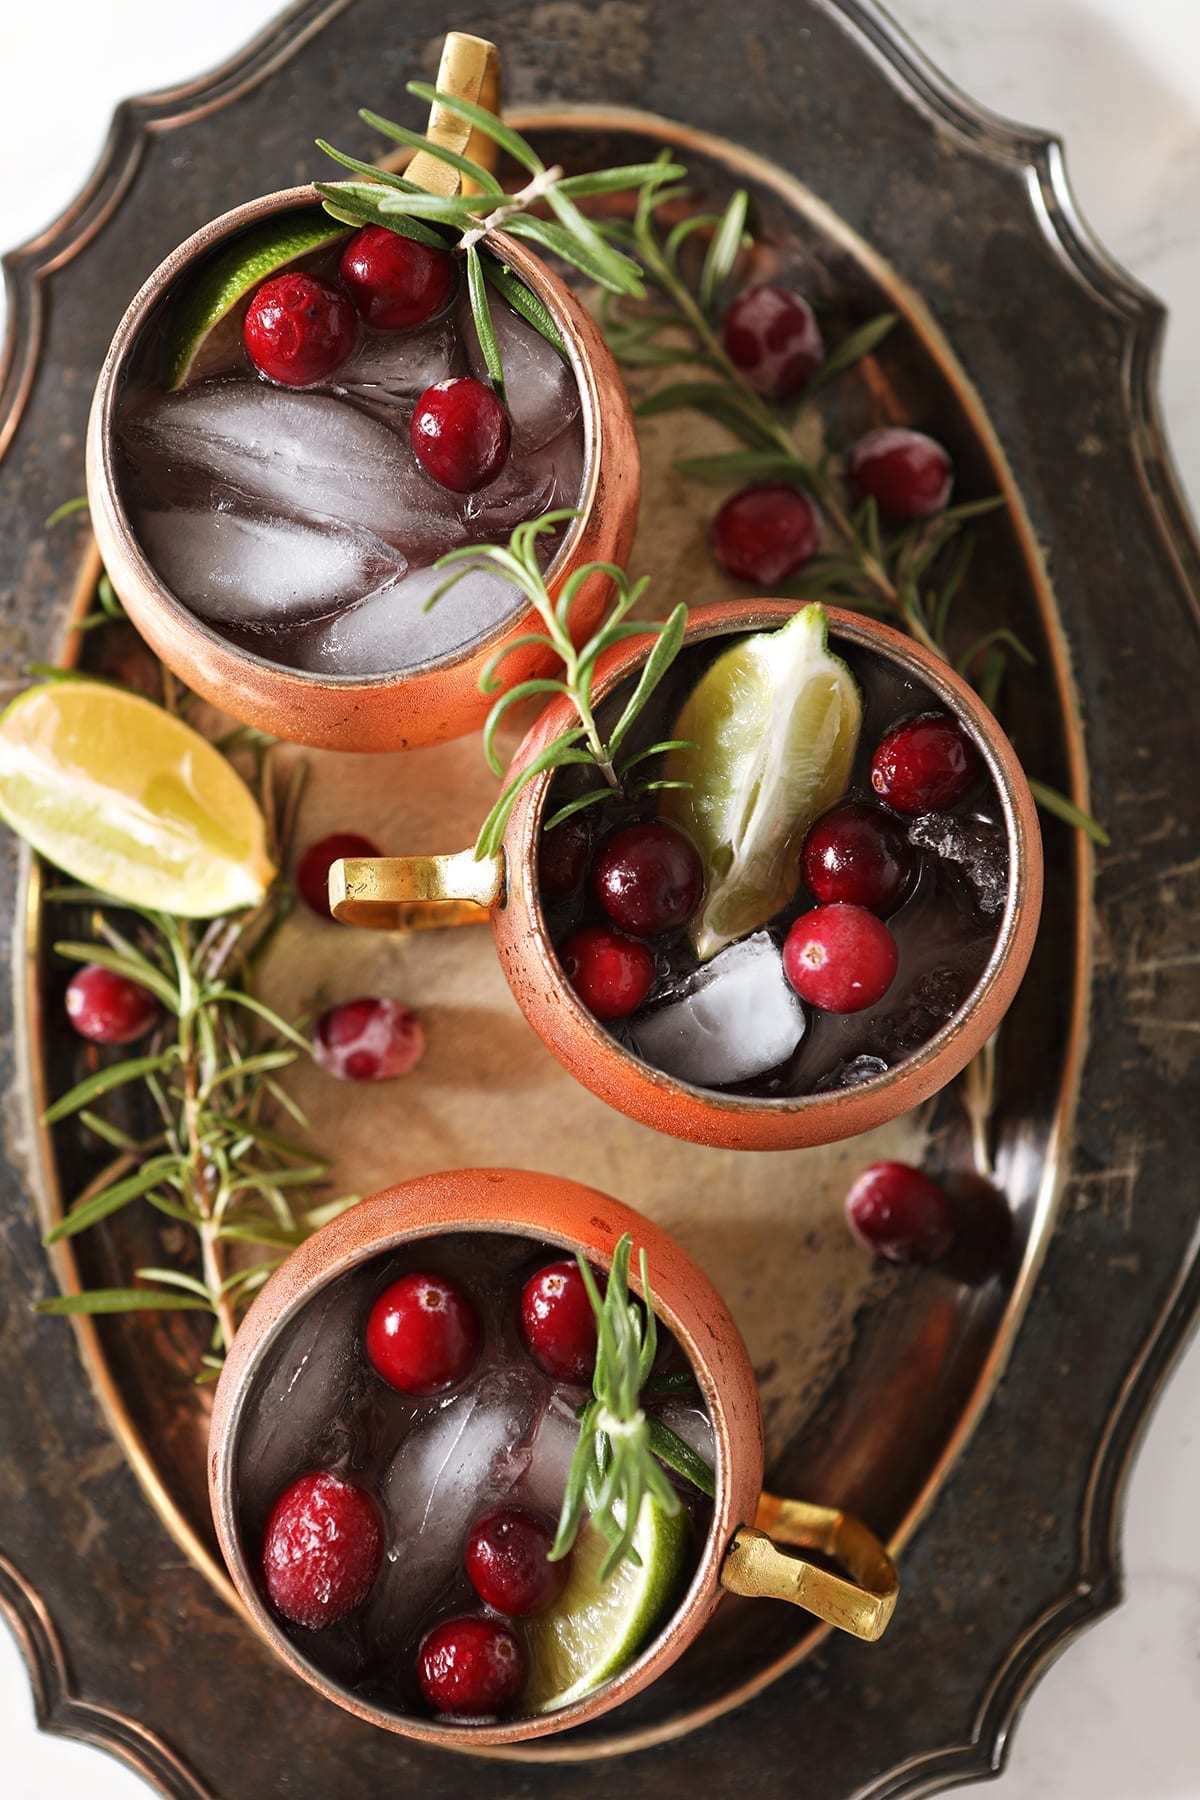 Three Yule Mules, garnished with fresh cranberries, lime wedges and rosemary sprigs, sit on a silver platter